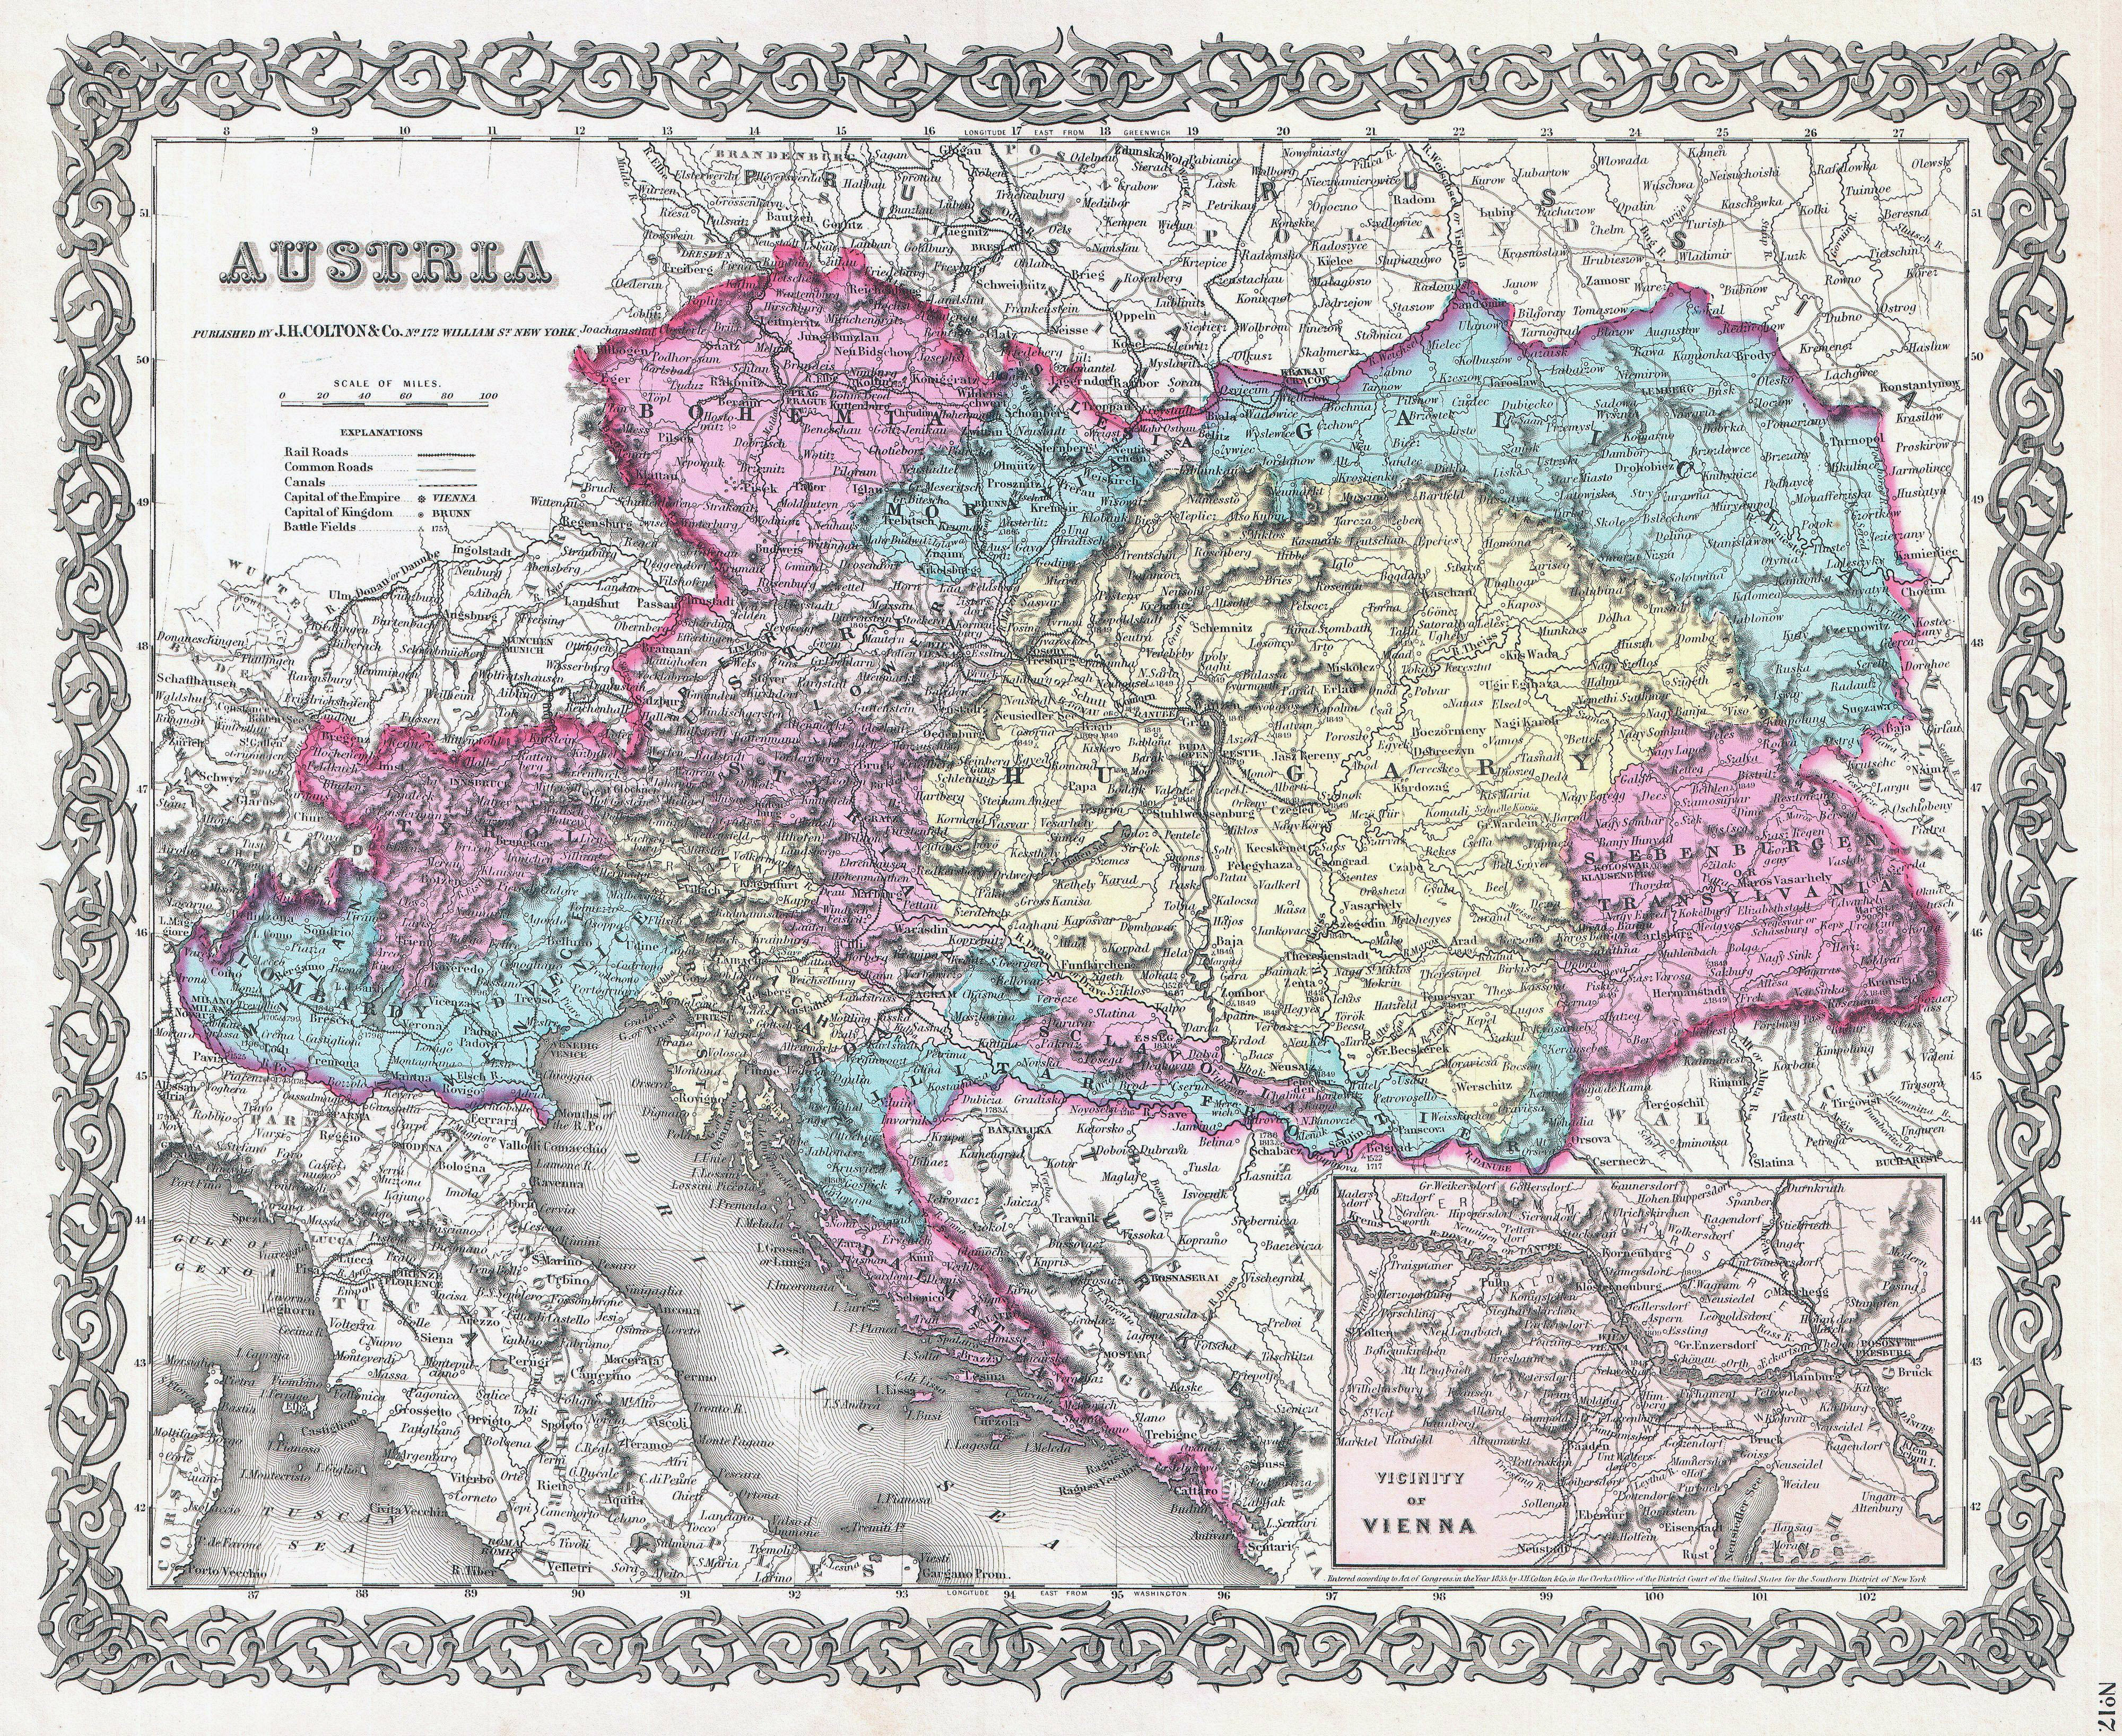 Large scale old political and administrative map of Austria with